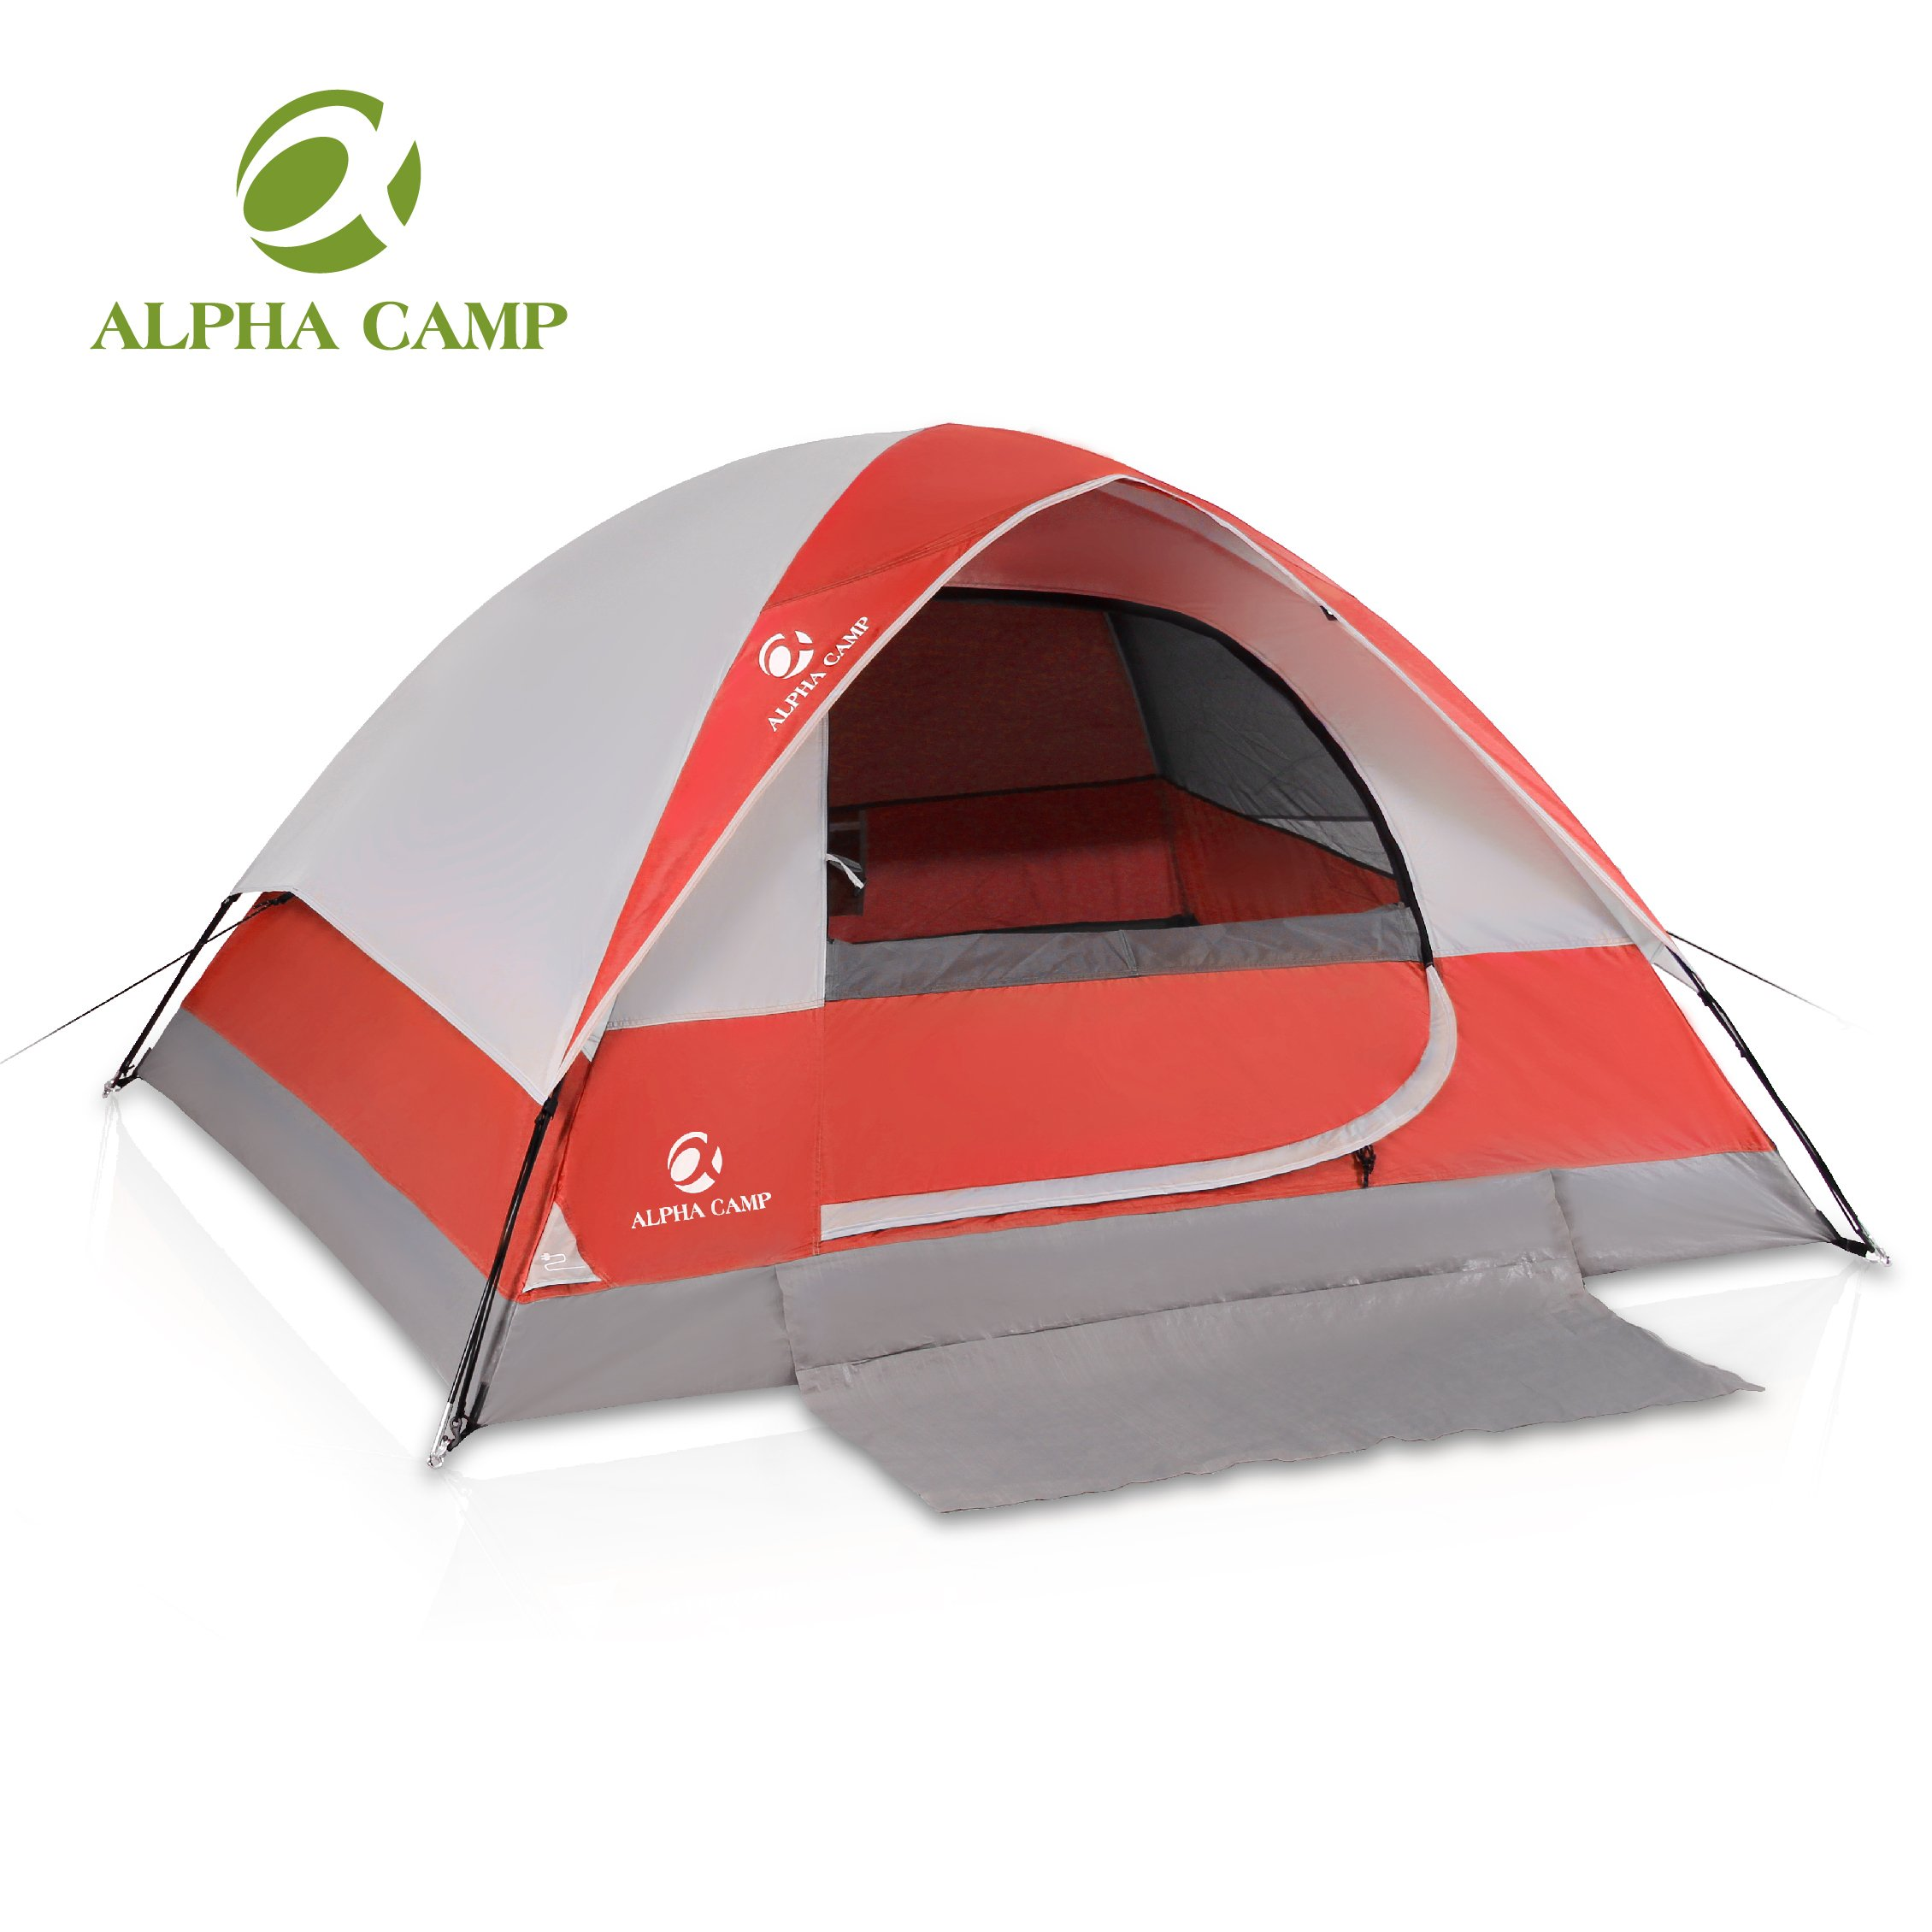 ALPHA CAMP 4 Person Camping Tent - 7' x 9' Red by ALPHA CAMP